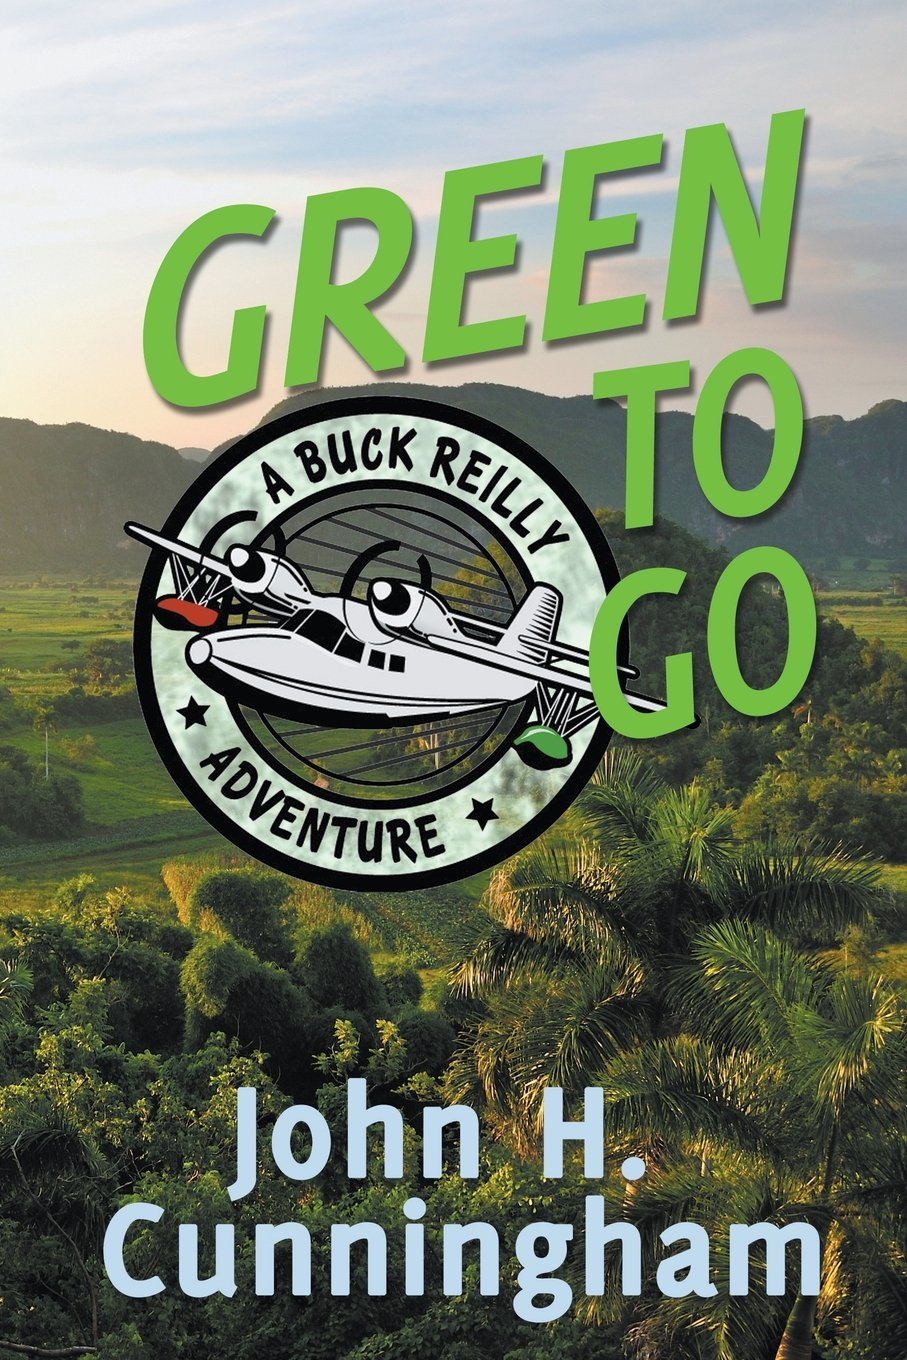 Green Go Buck Reilly Adventure product image